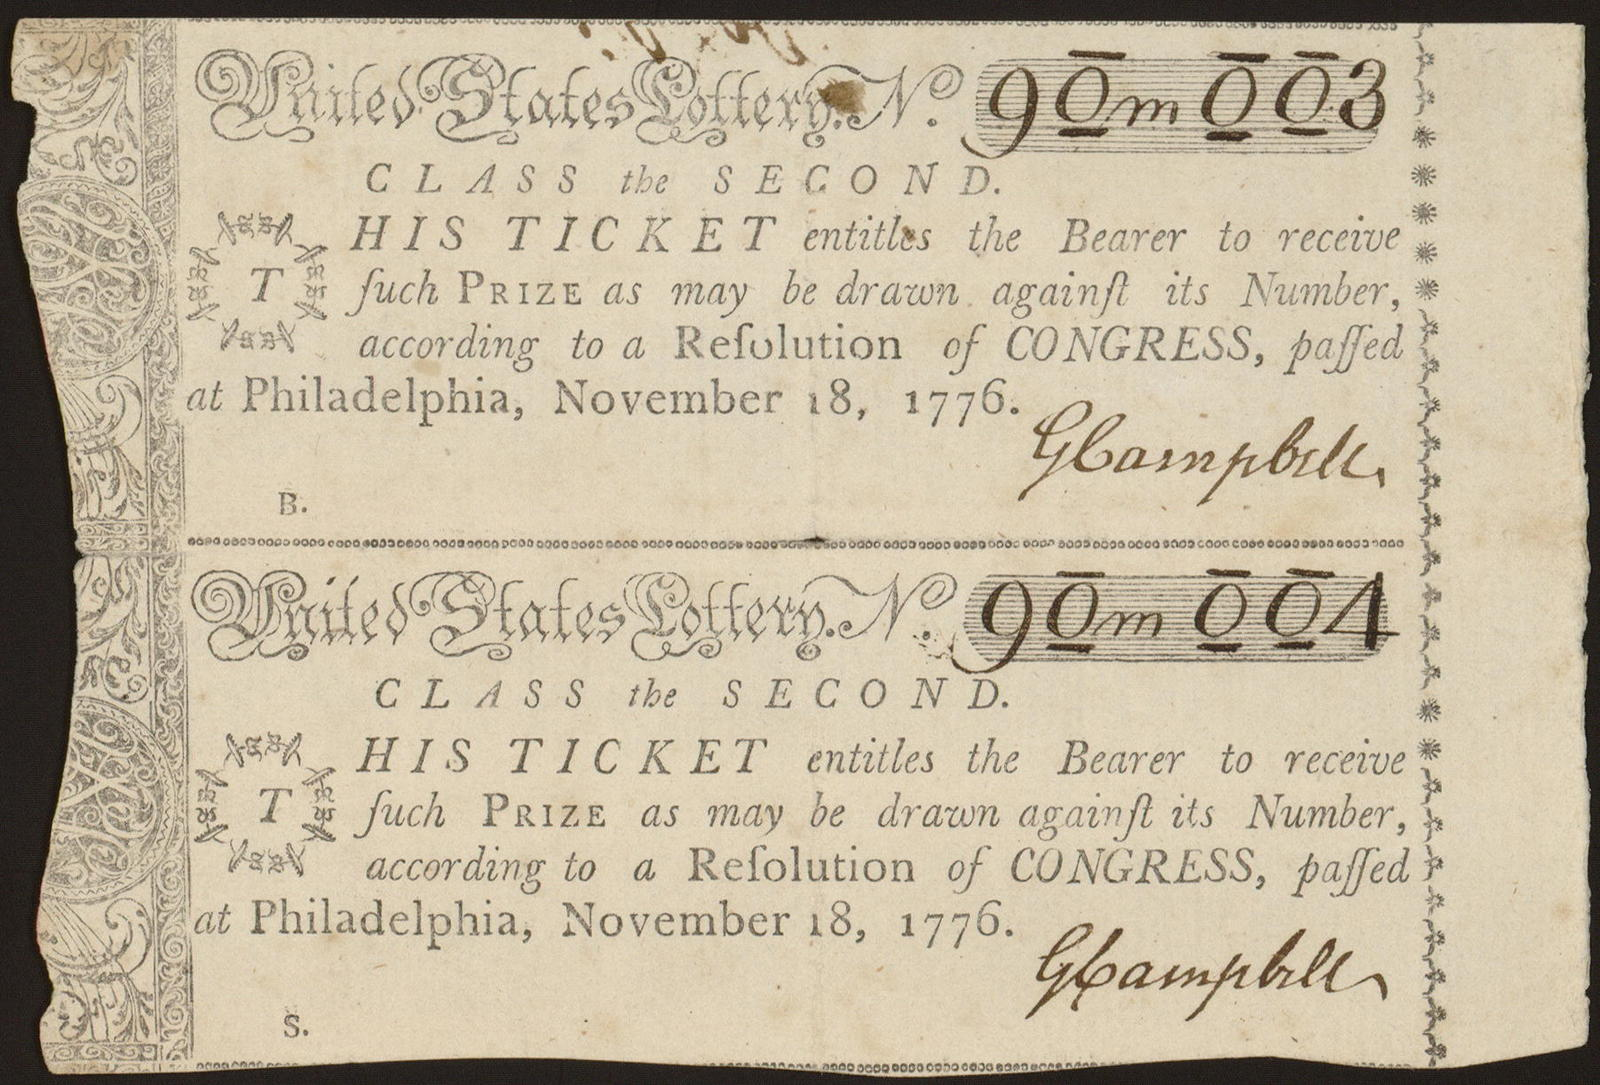 United States Lottery. No. [blank] class the second : This ticket entitles the bearer to receive such prize as may be drawn against its number, according to a resolution of Congress, passed at Philadelphia, November 18, 1776.